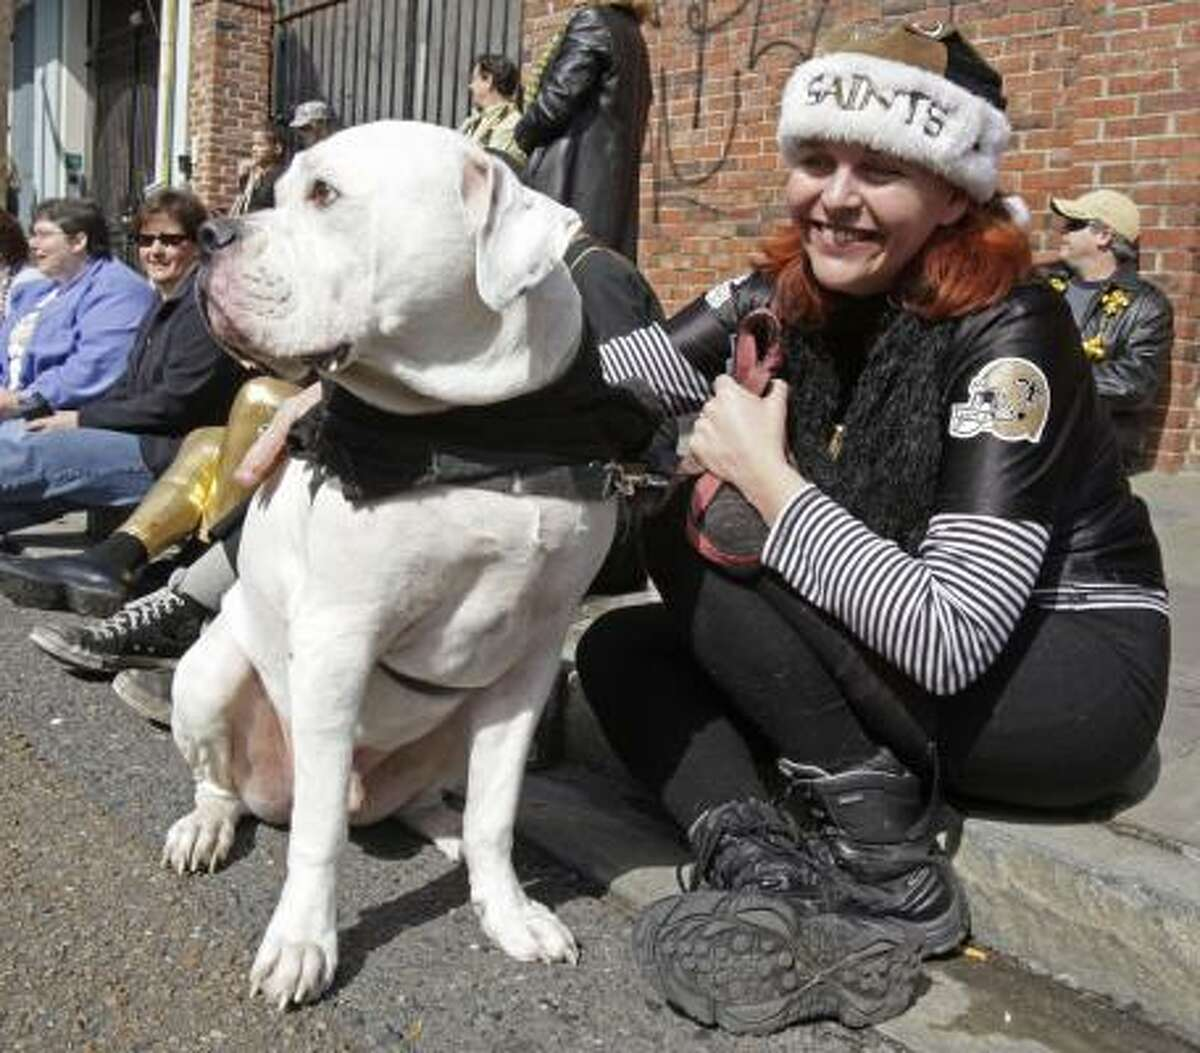 Denise Heston and Stitch wait for the Mystic Krewe of Barkus parades to march through the streets of the French Quarter in New Orleans Sunday.